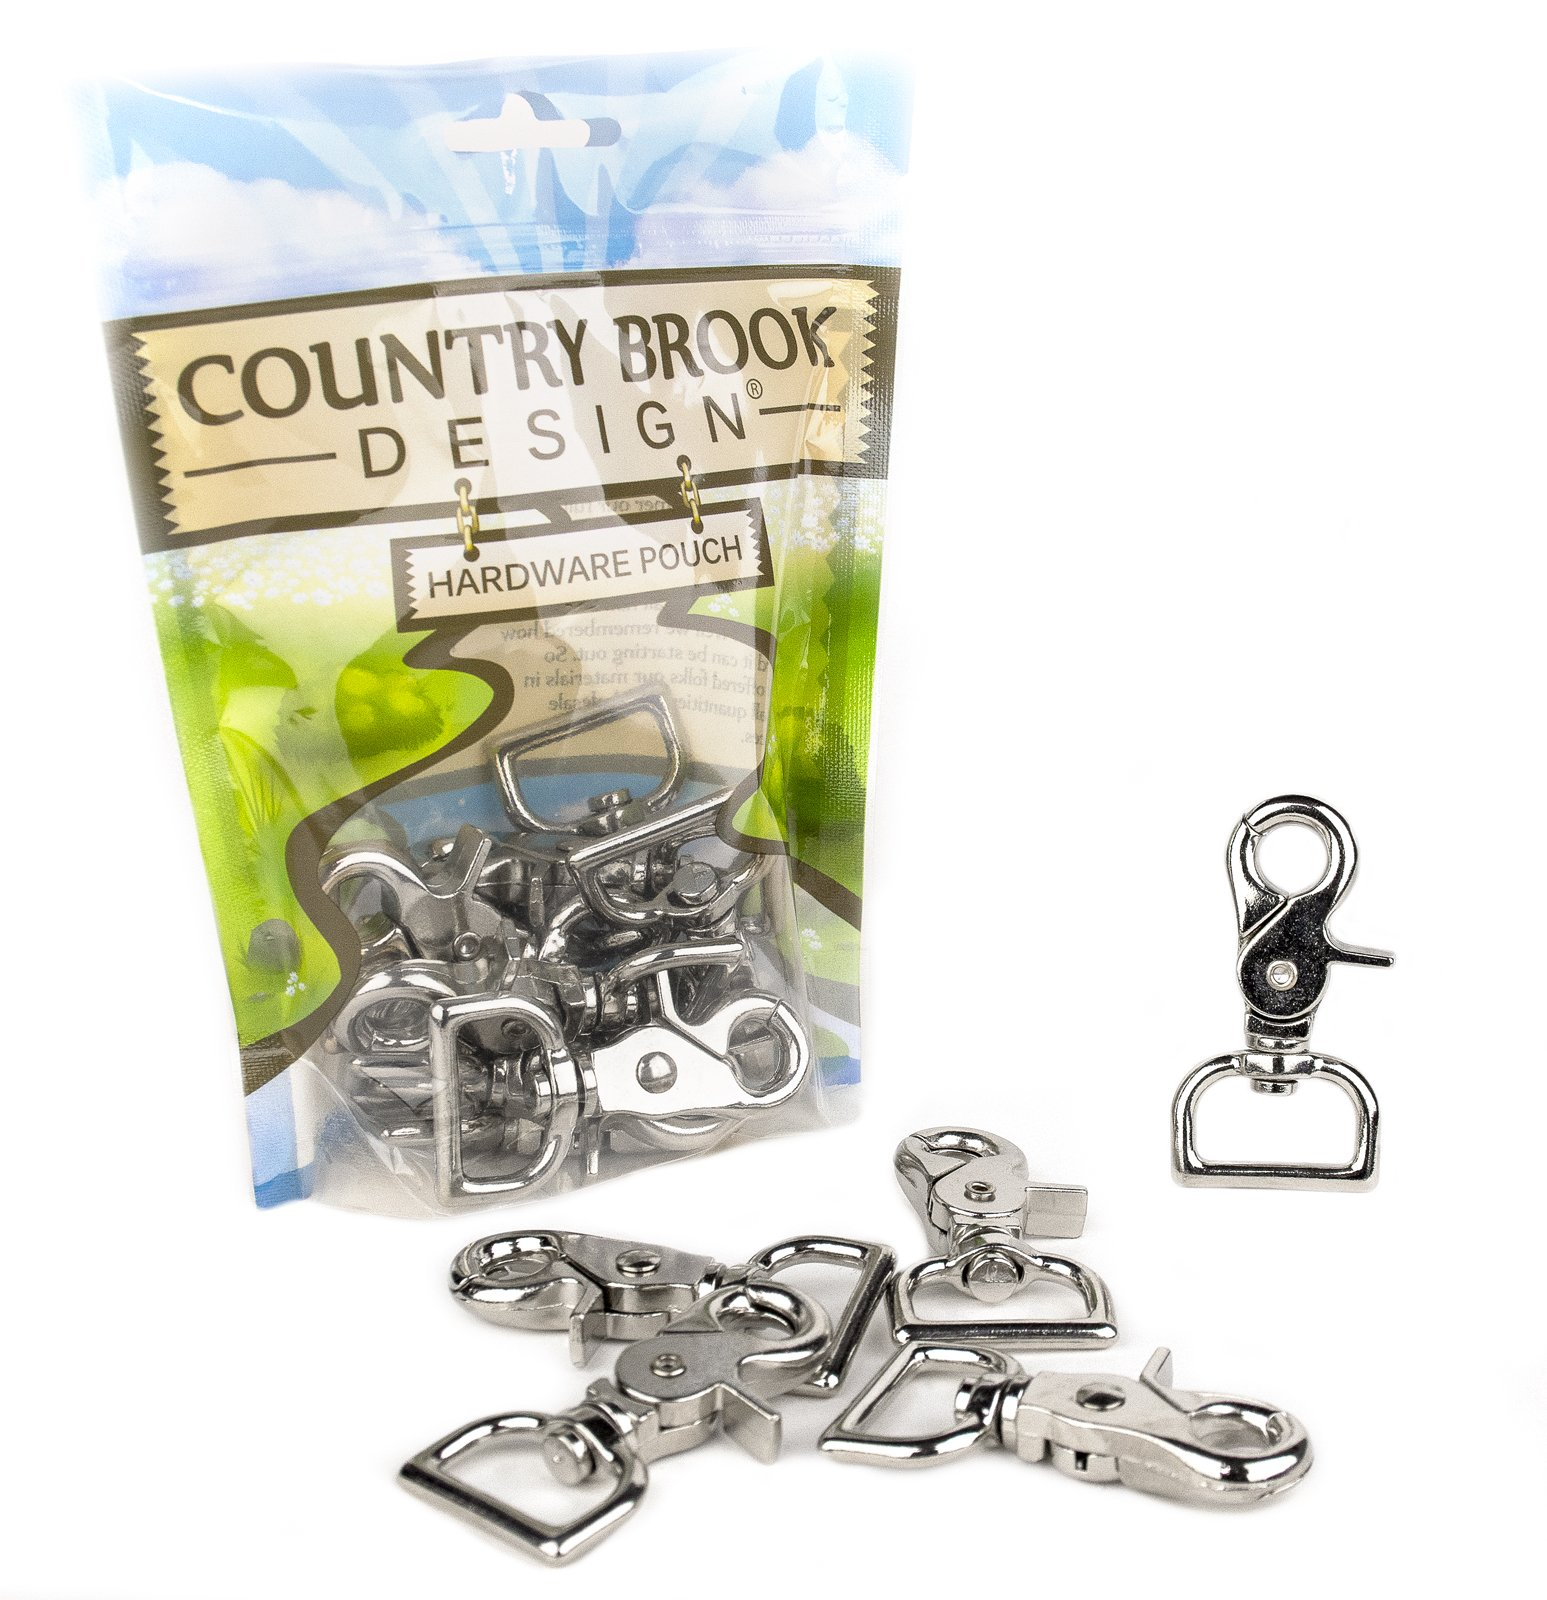 50 - Country Brook Design | 1 Inch Trigger Swivel Snap Hooks by Country Brook Design